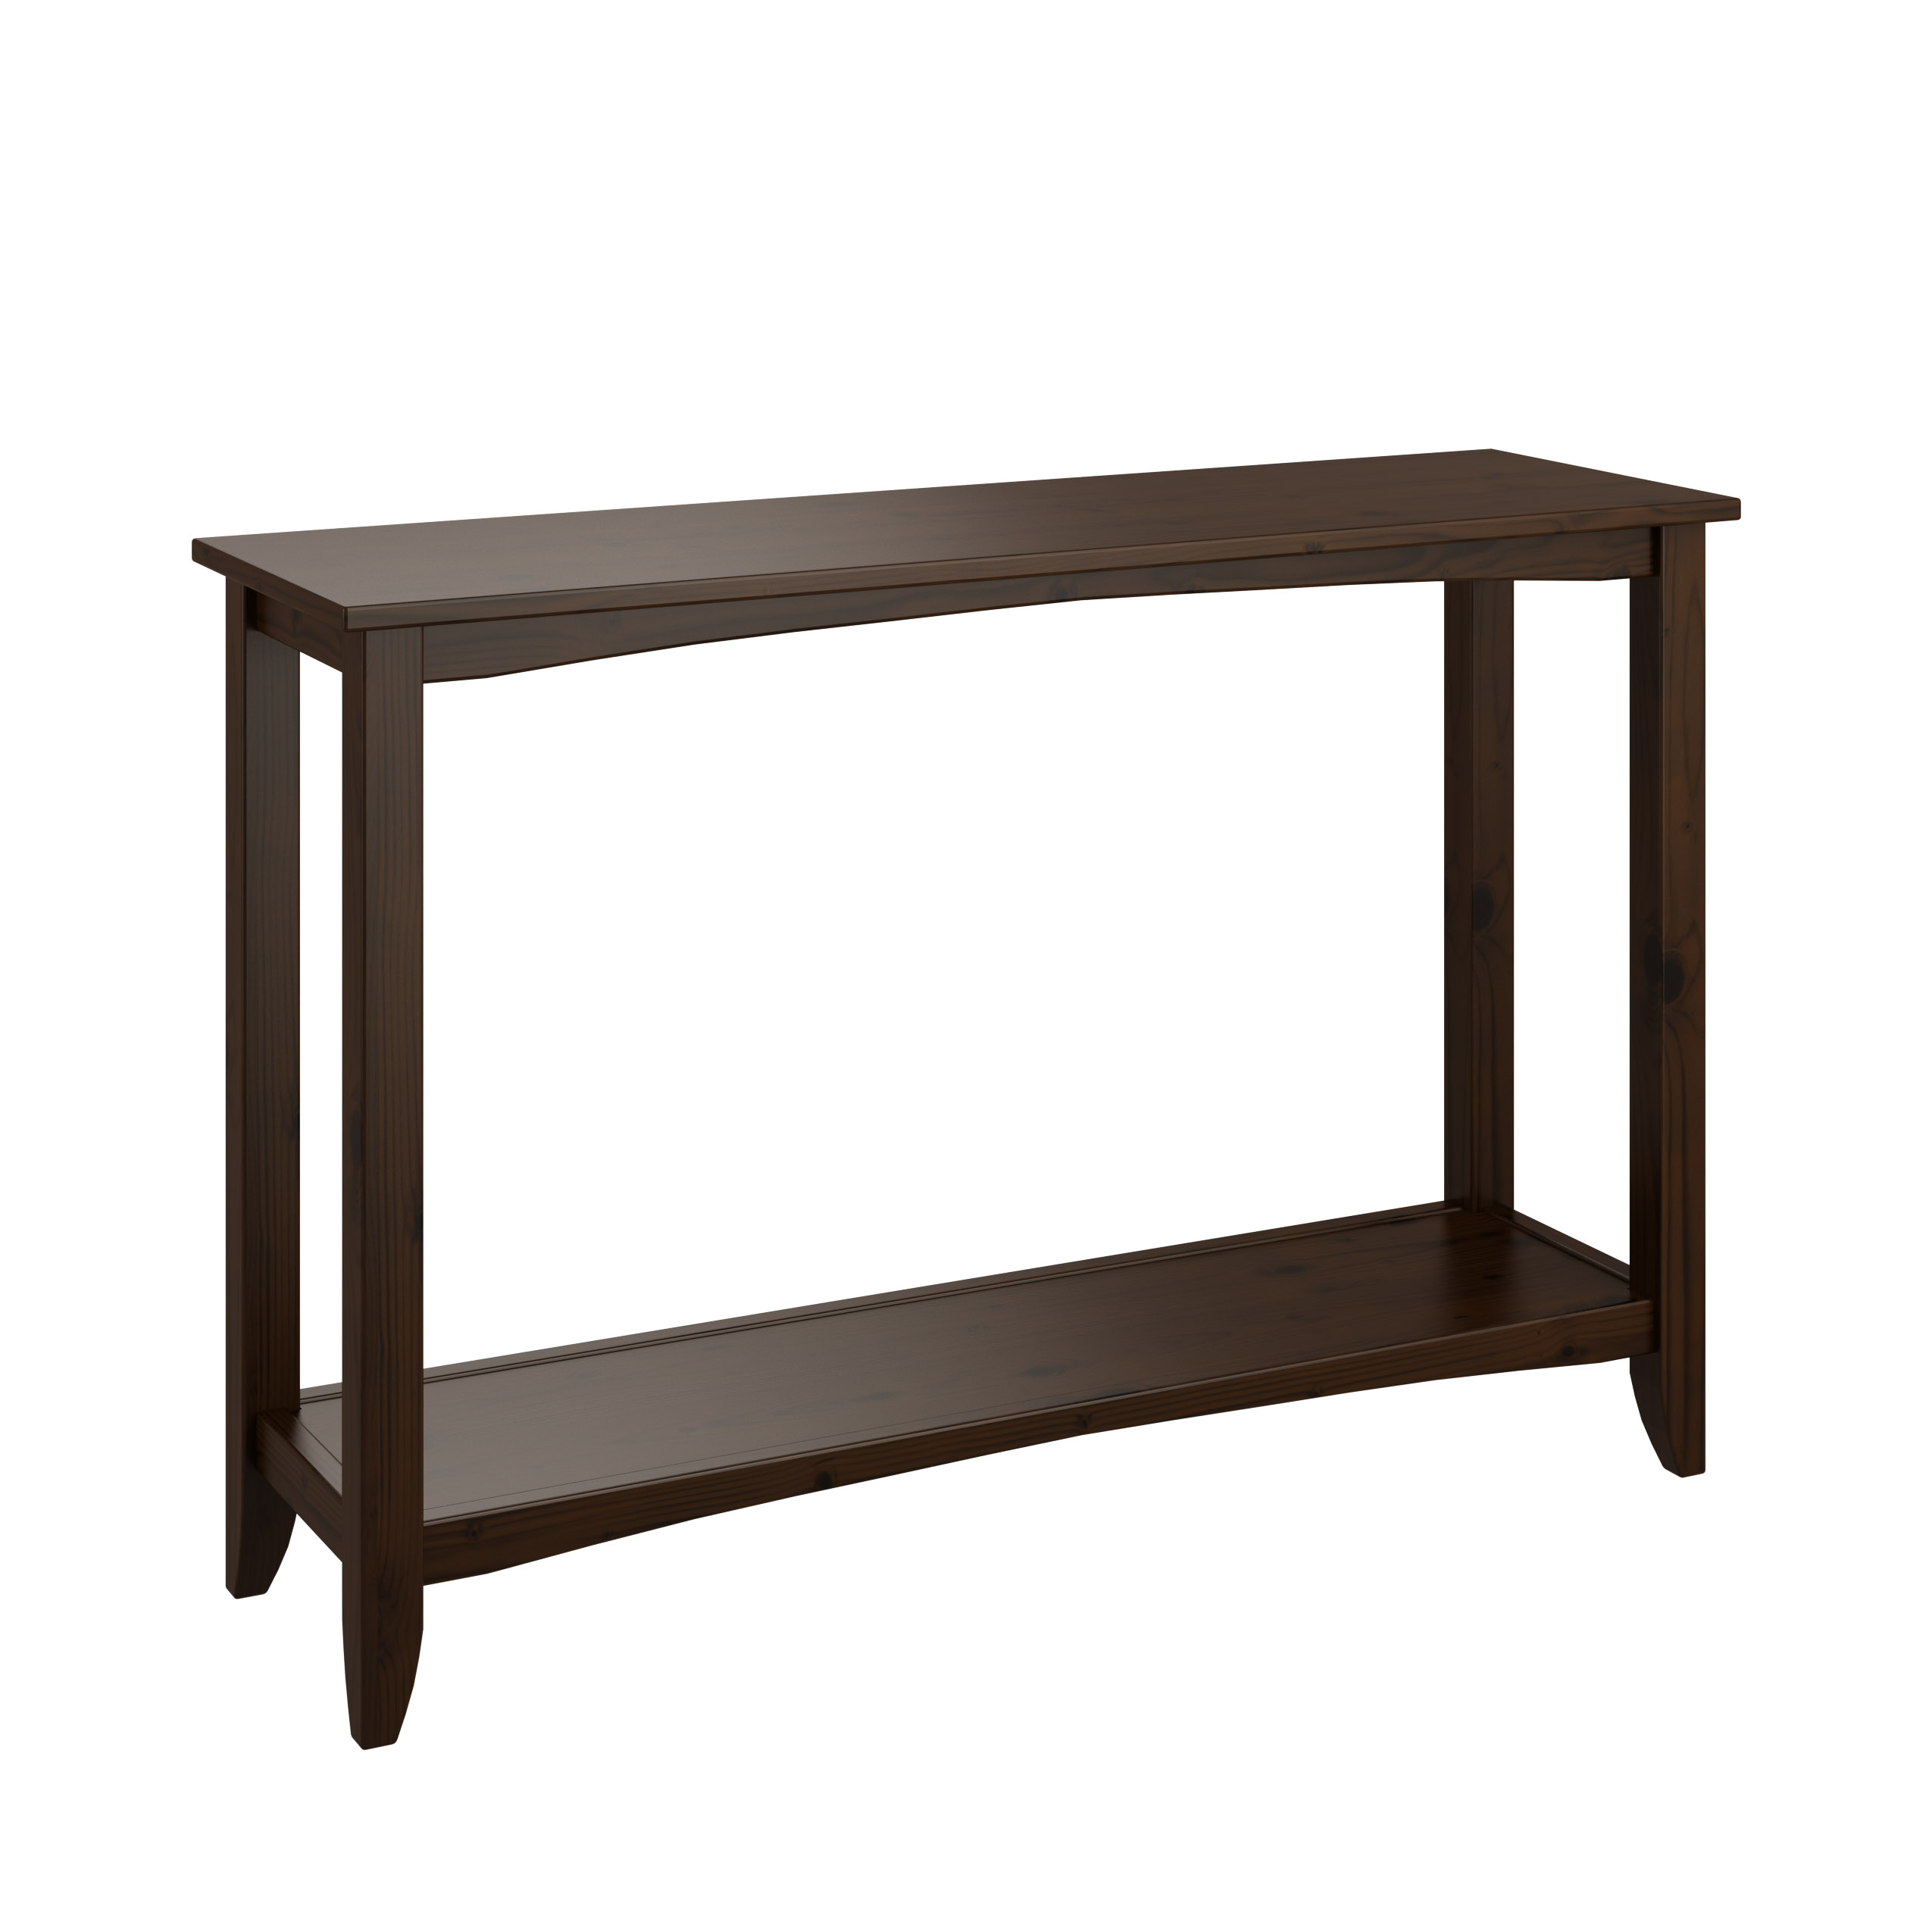 CorLiving Cambridge Solid Wood Two-Tiered Console Table